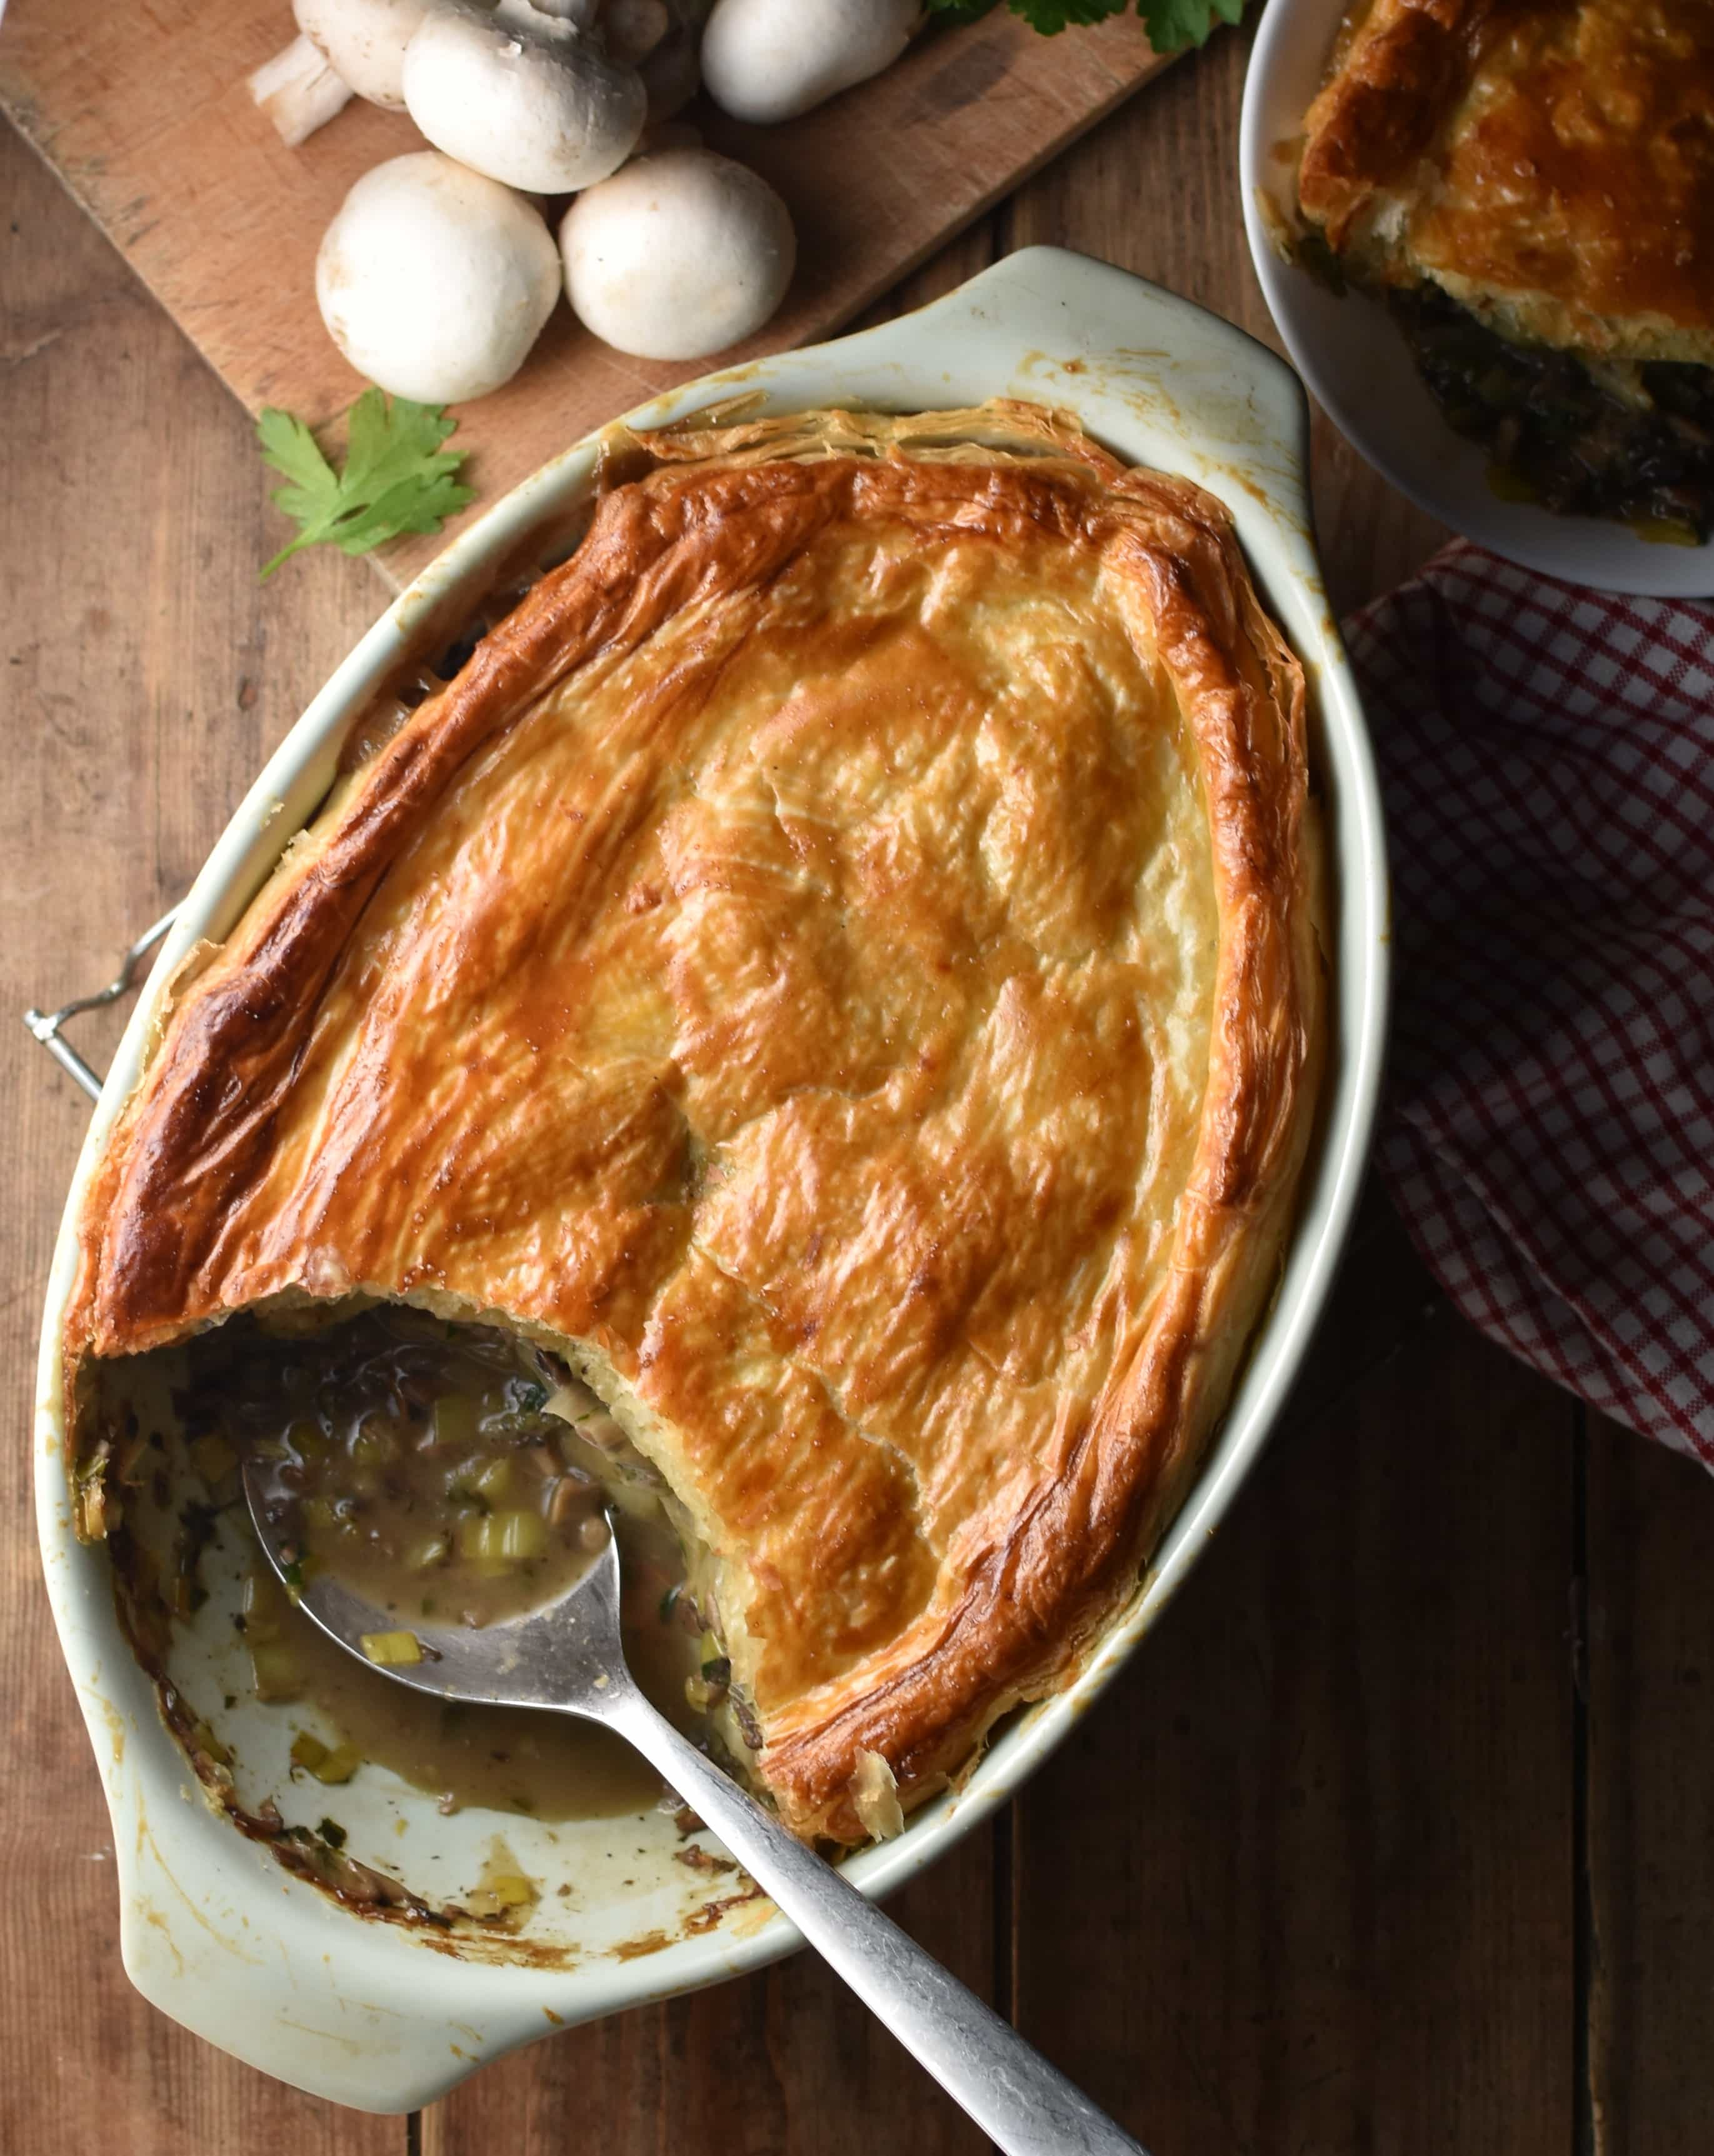 Mushroom and leek pie topped with golden brown pastry in white oval dish with spoon, mushrooms and pie in white dish in background.